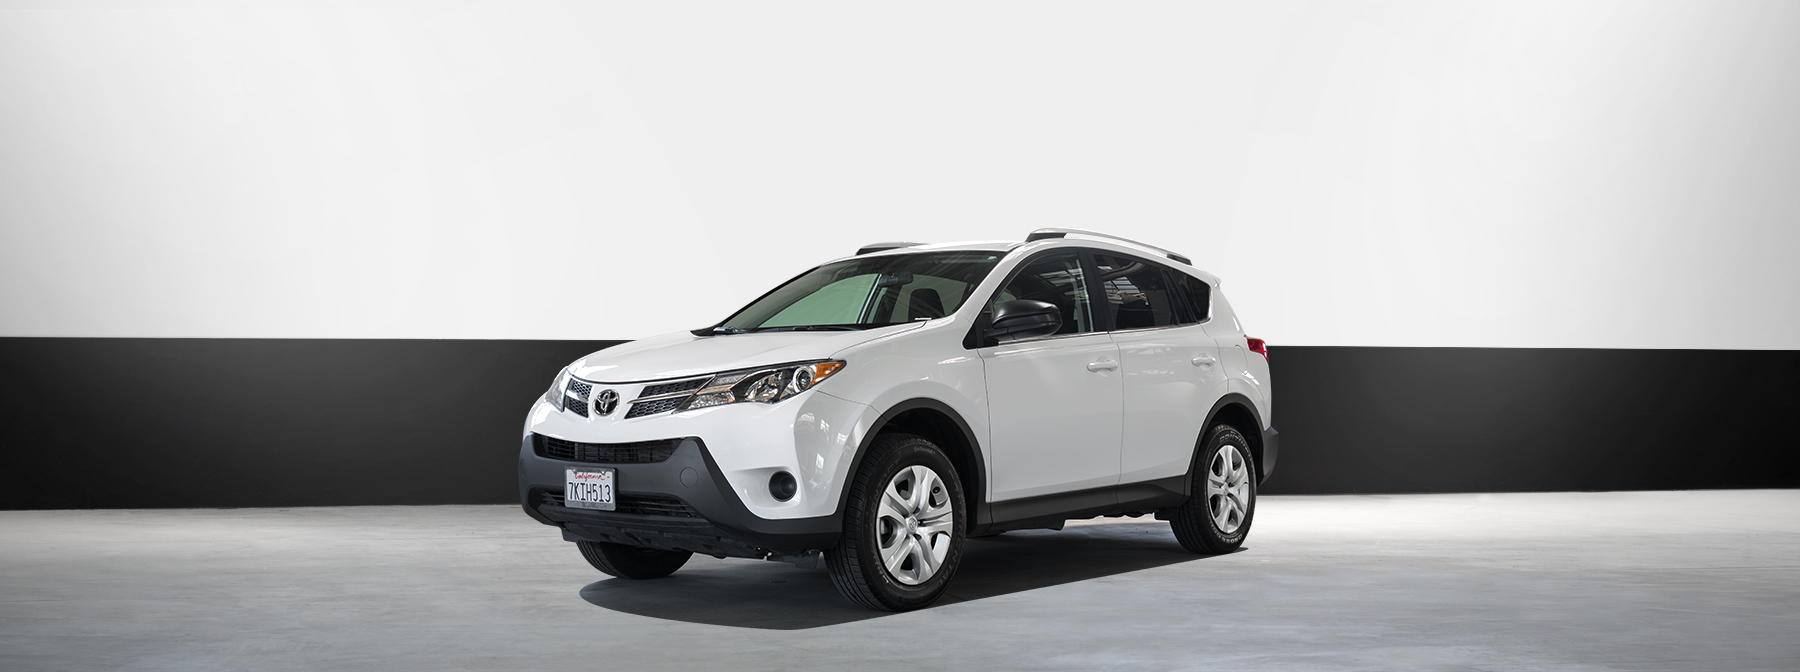 Rent a Toyota RAV4 in Los Angeles